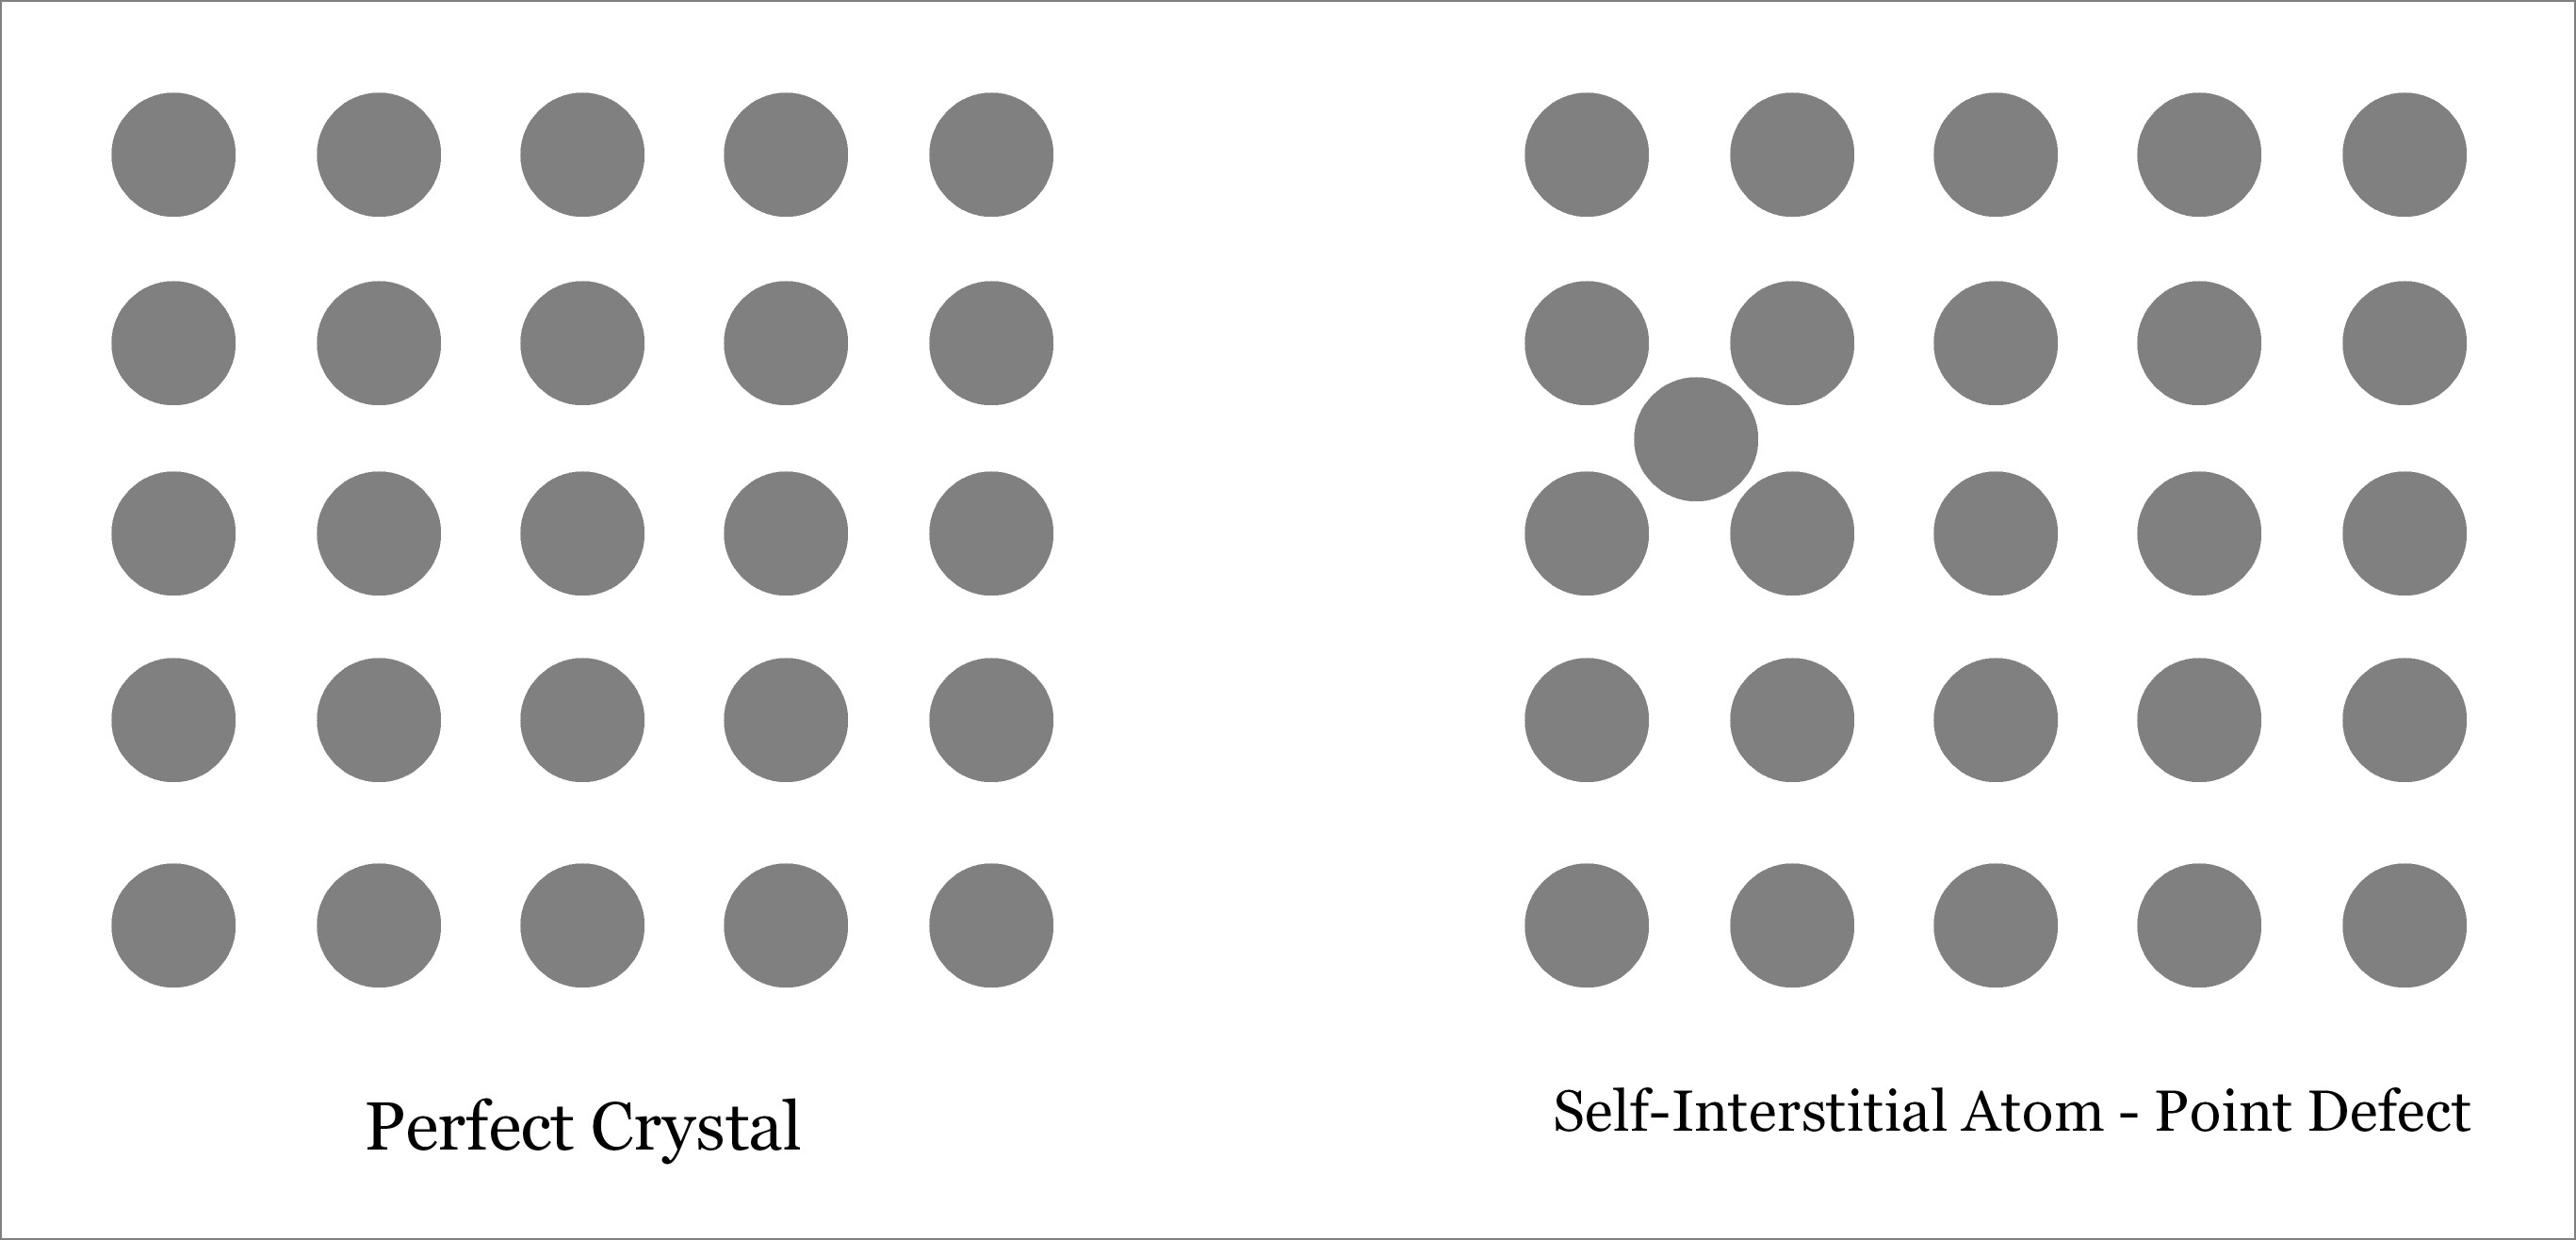 Self-Interstitial Atom - Point Defect - Defects in Solid